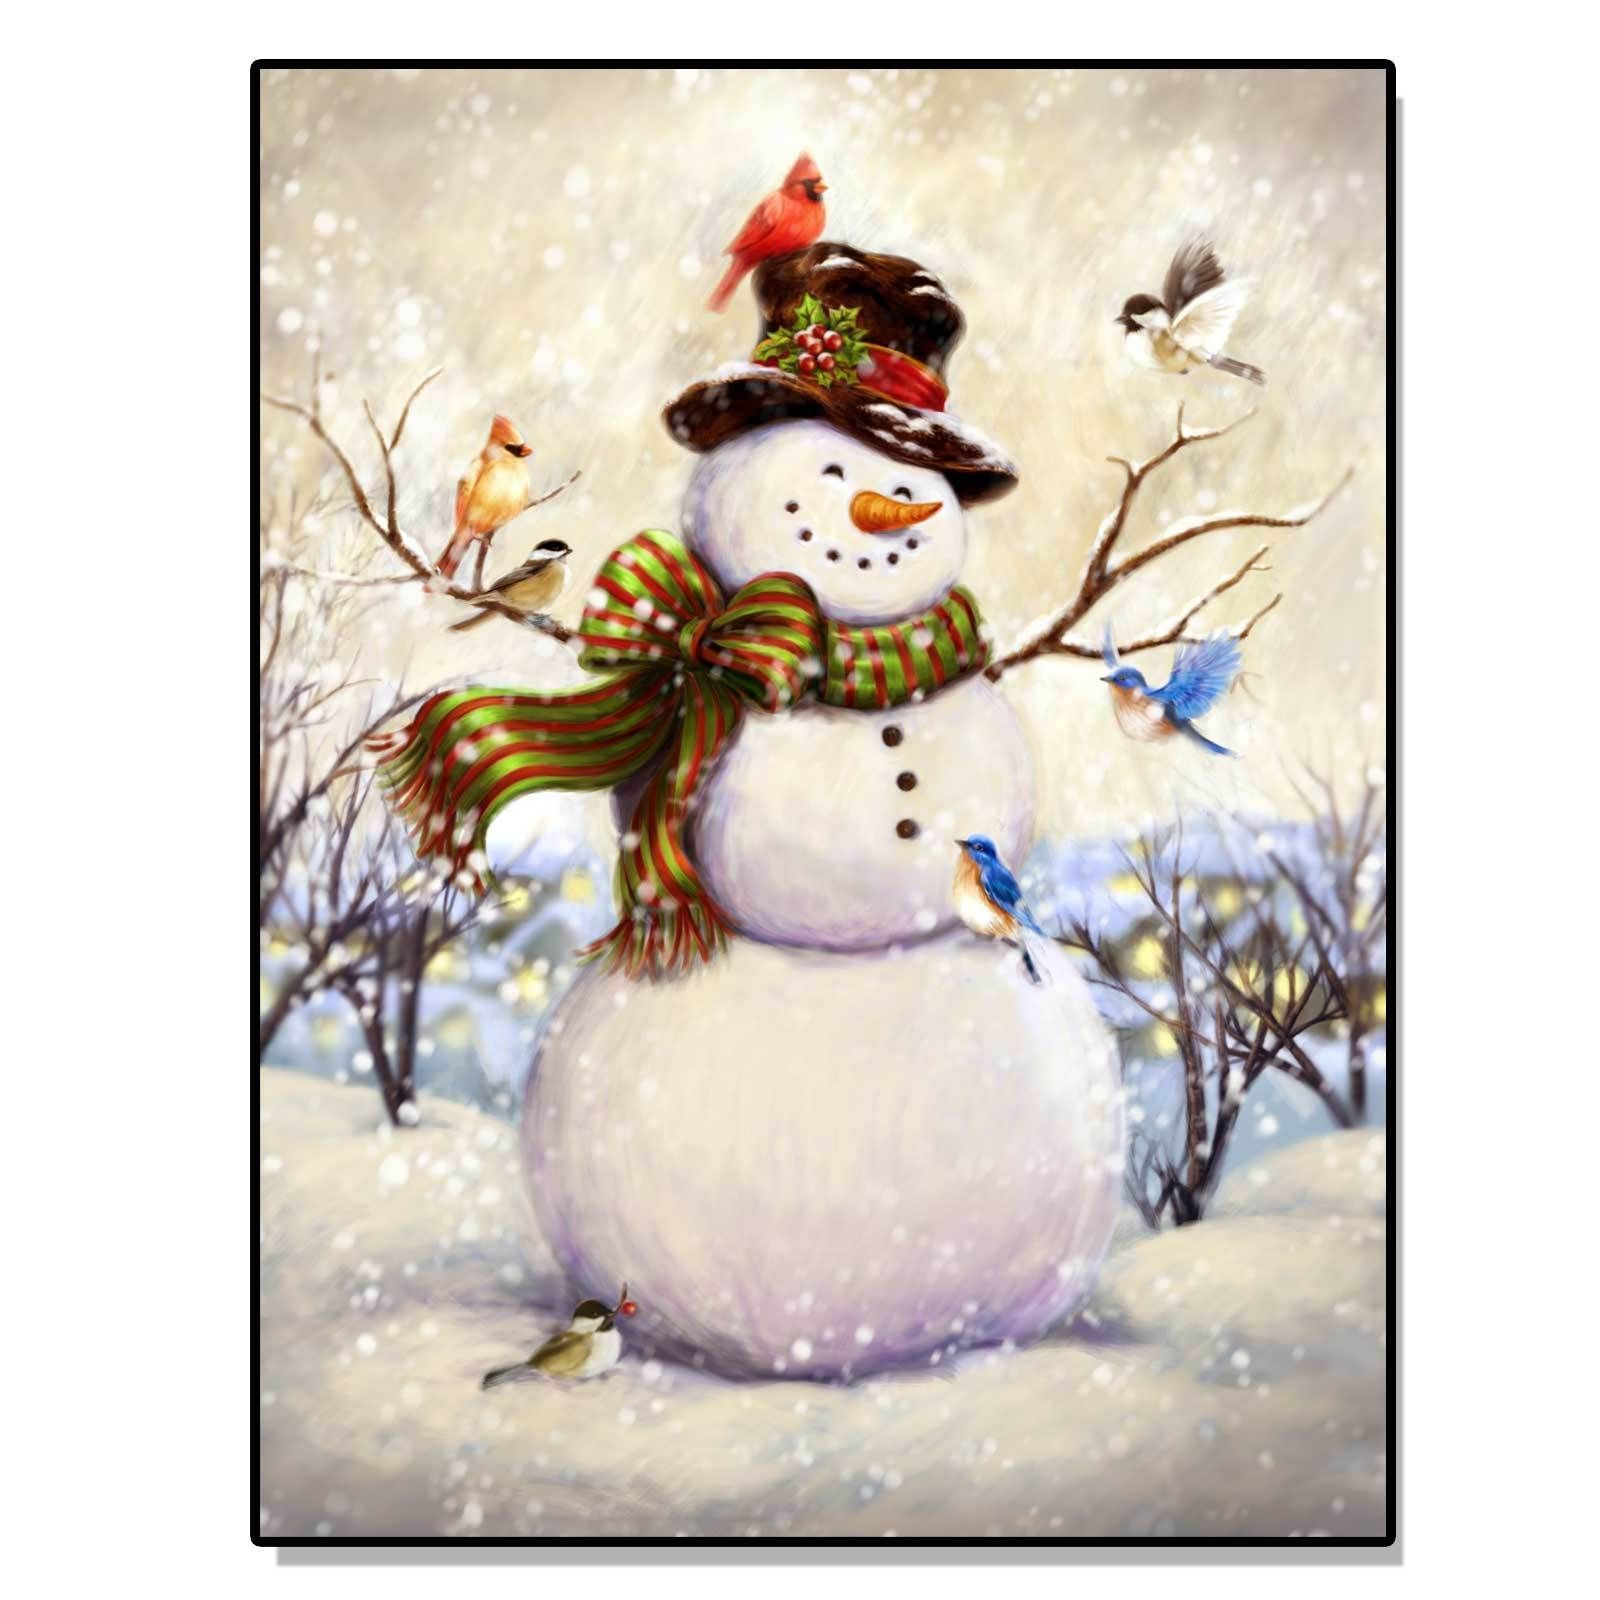 Overstock Com Online Shopping Bedding Furniture Electronics Jewelry Clothing More Lighted Canvas Art Christmas Canvas Snowman Painting